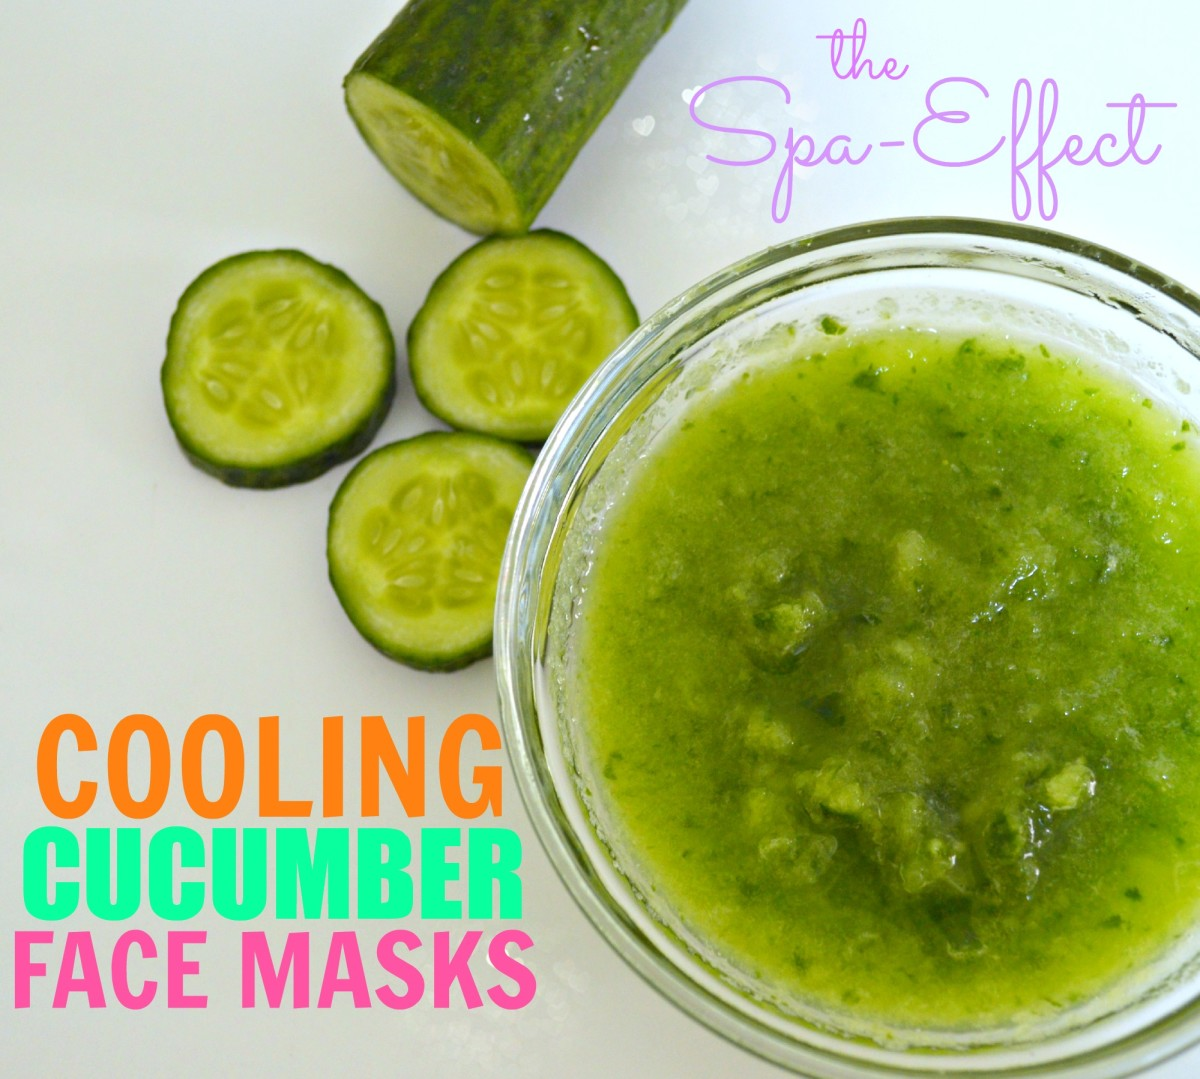 Ready to get a spa-effect right at home? Cooling cucumber face masks do just that! Treat skin problems with different cucumber face masks.